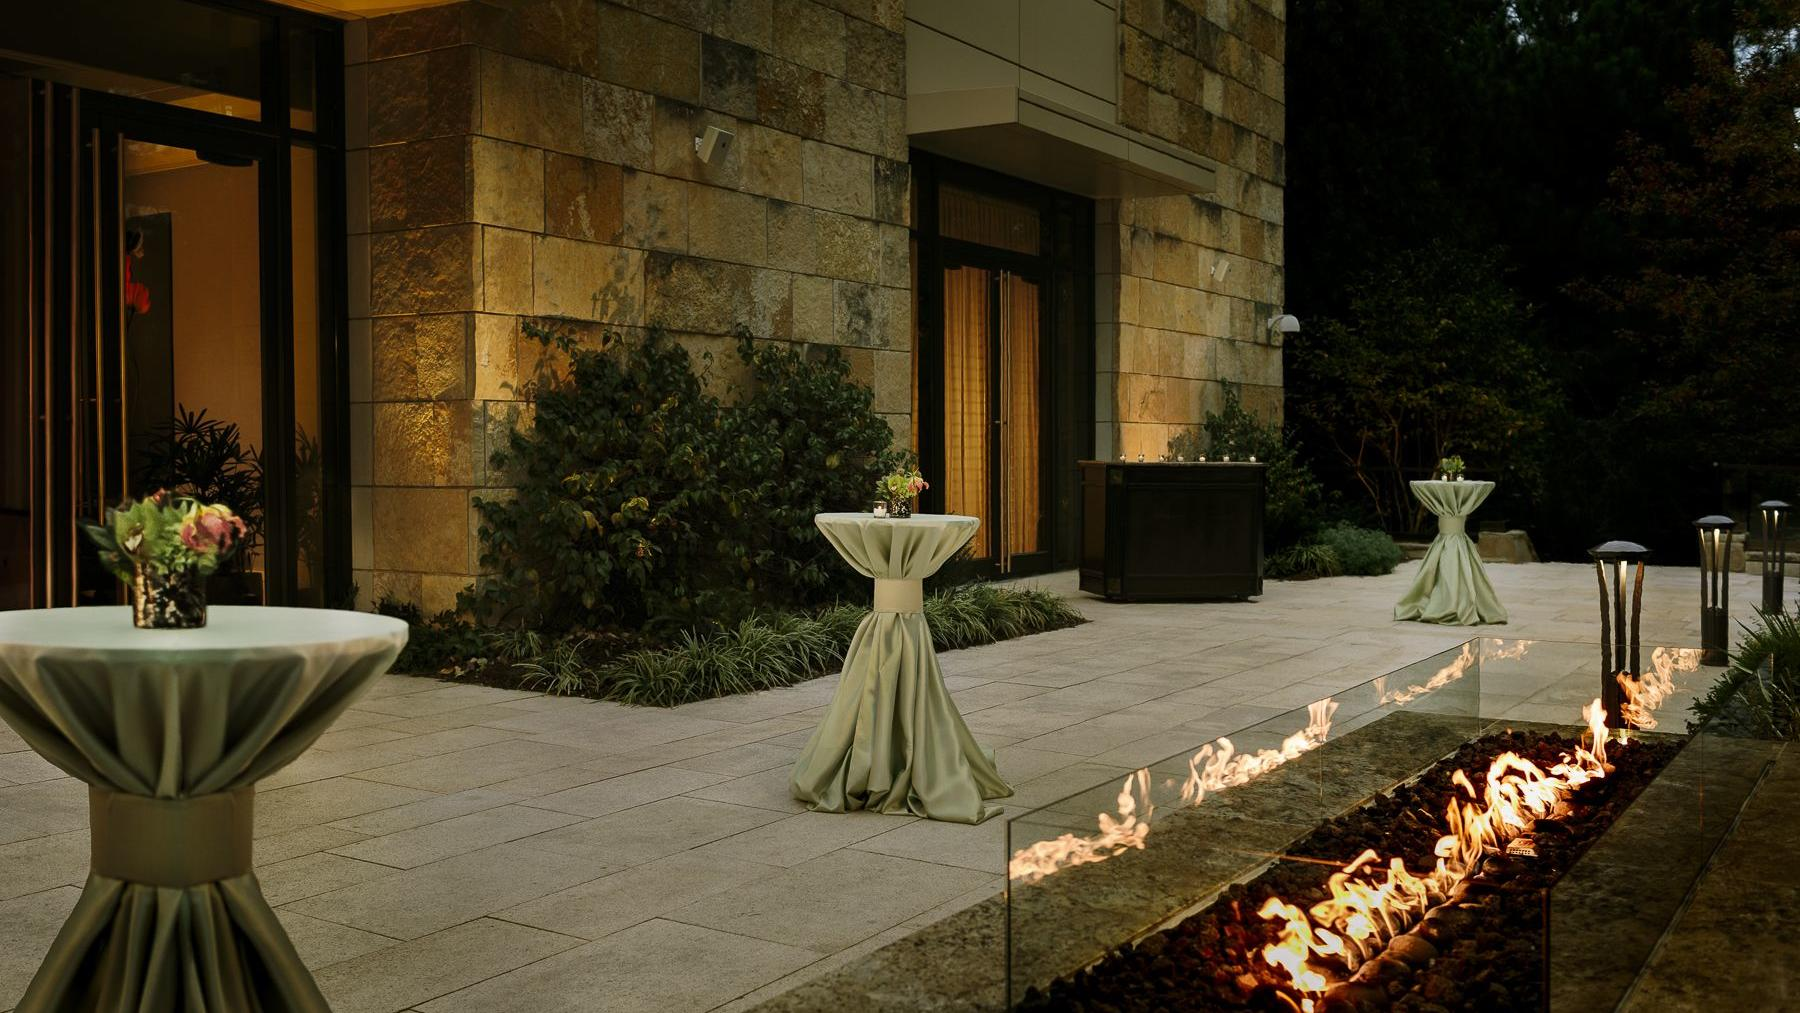 outside terrace with fire decor